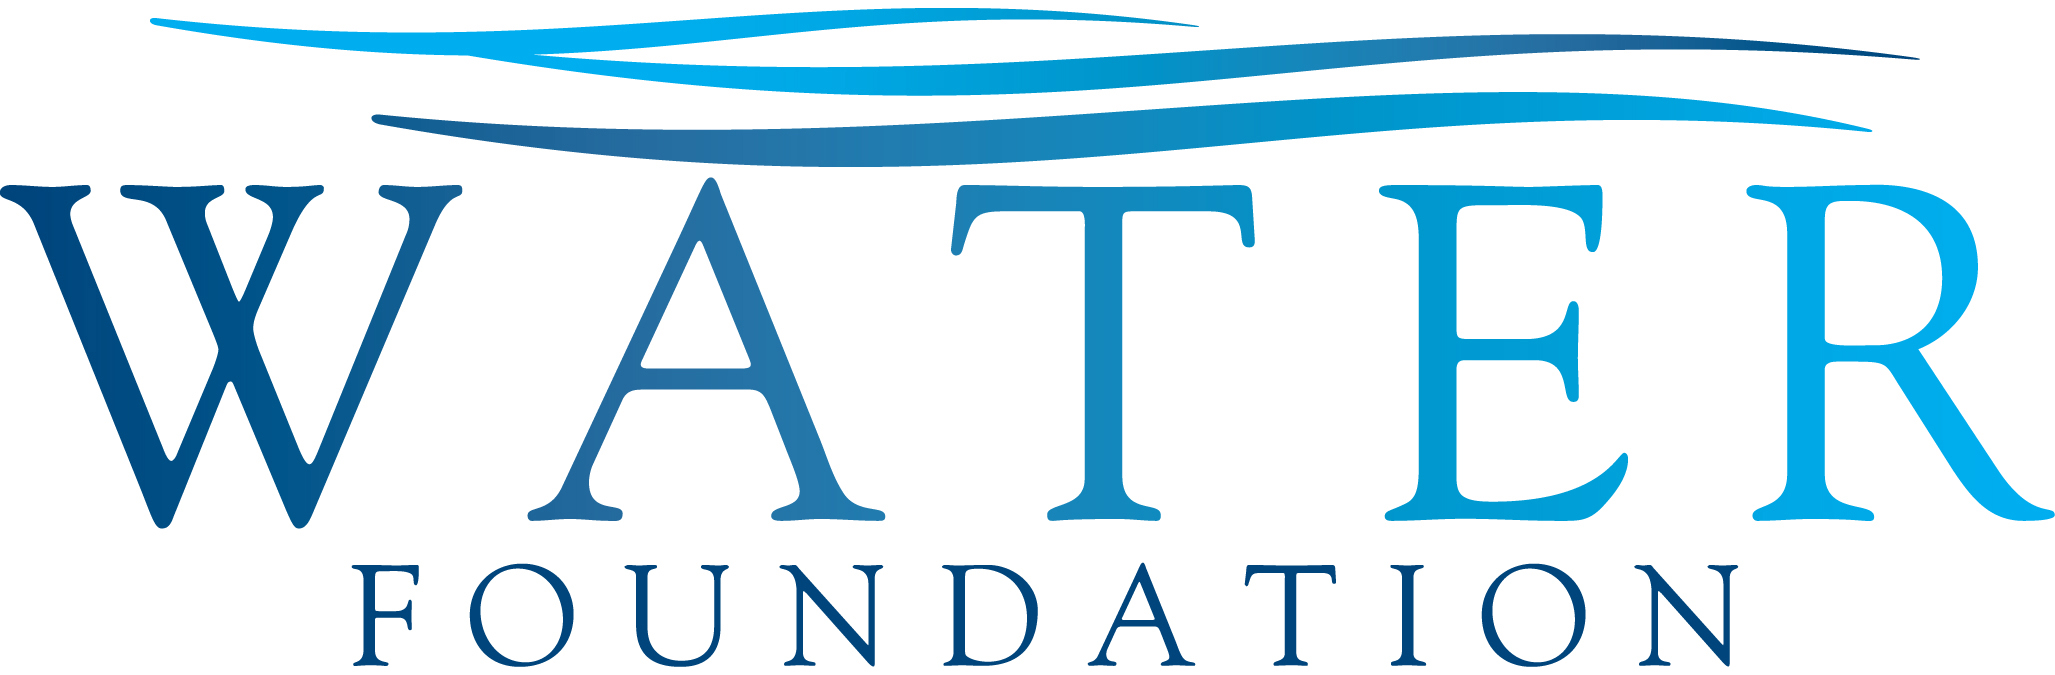 The Water Foundation